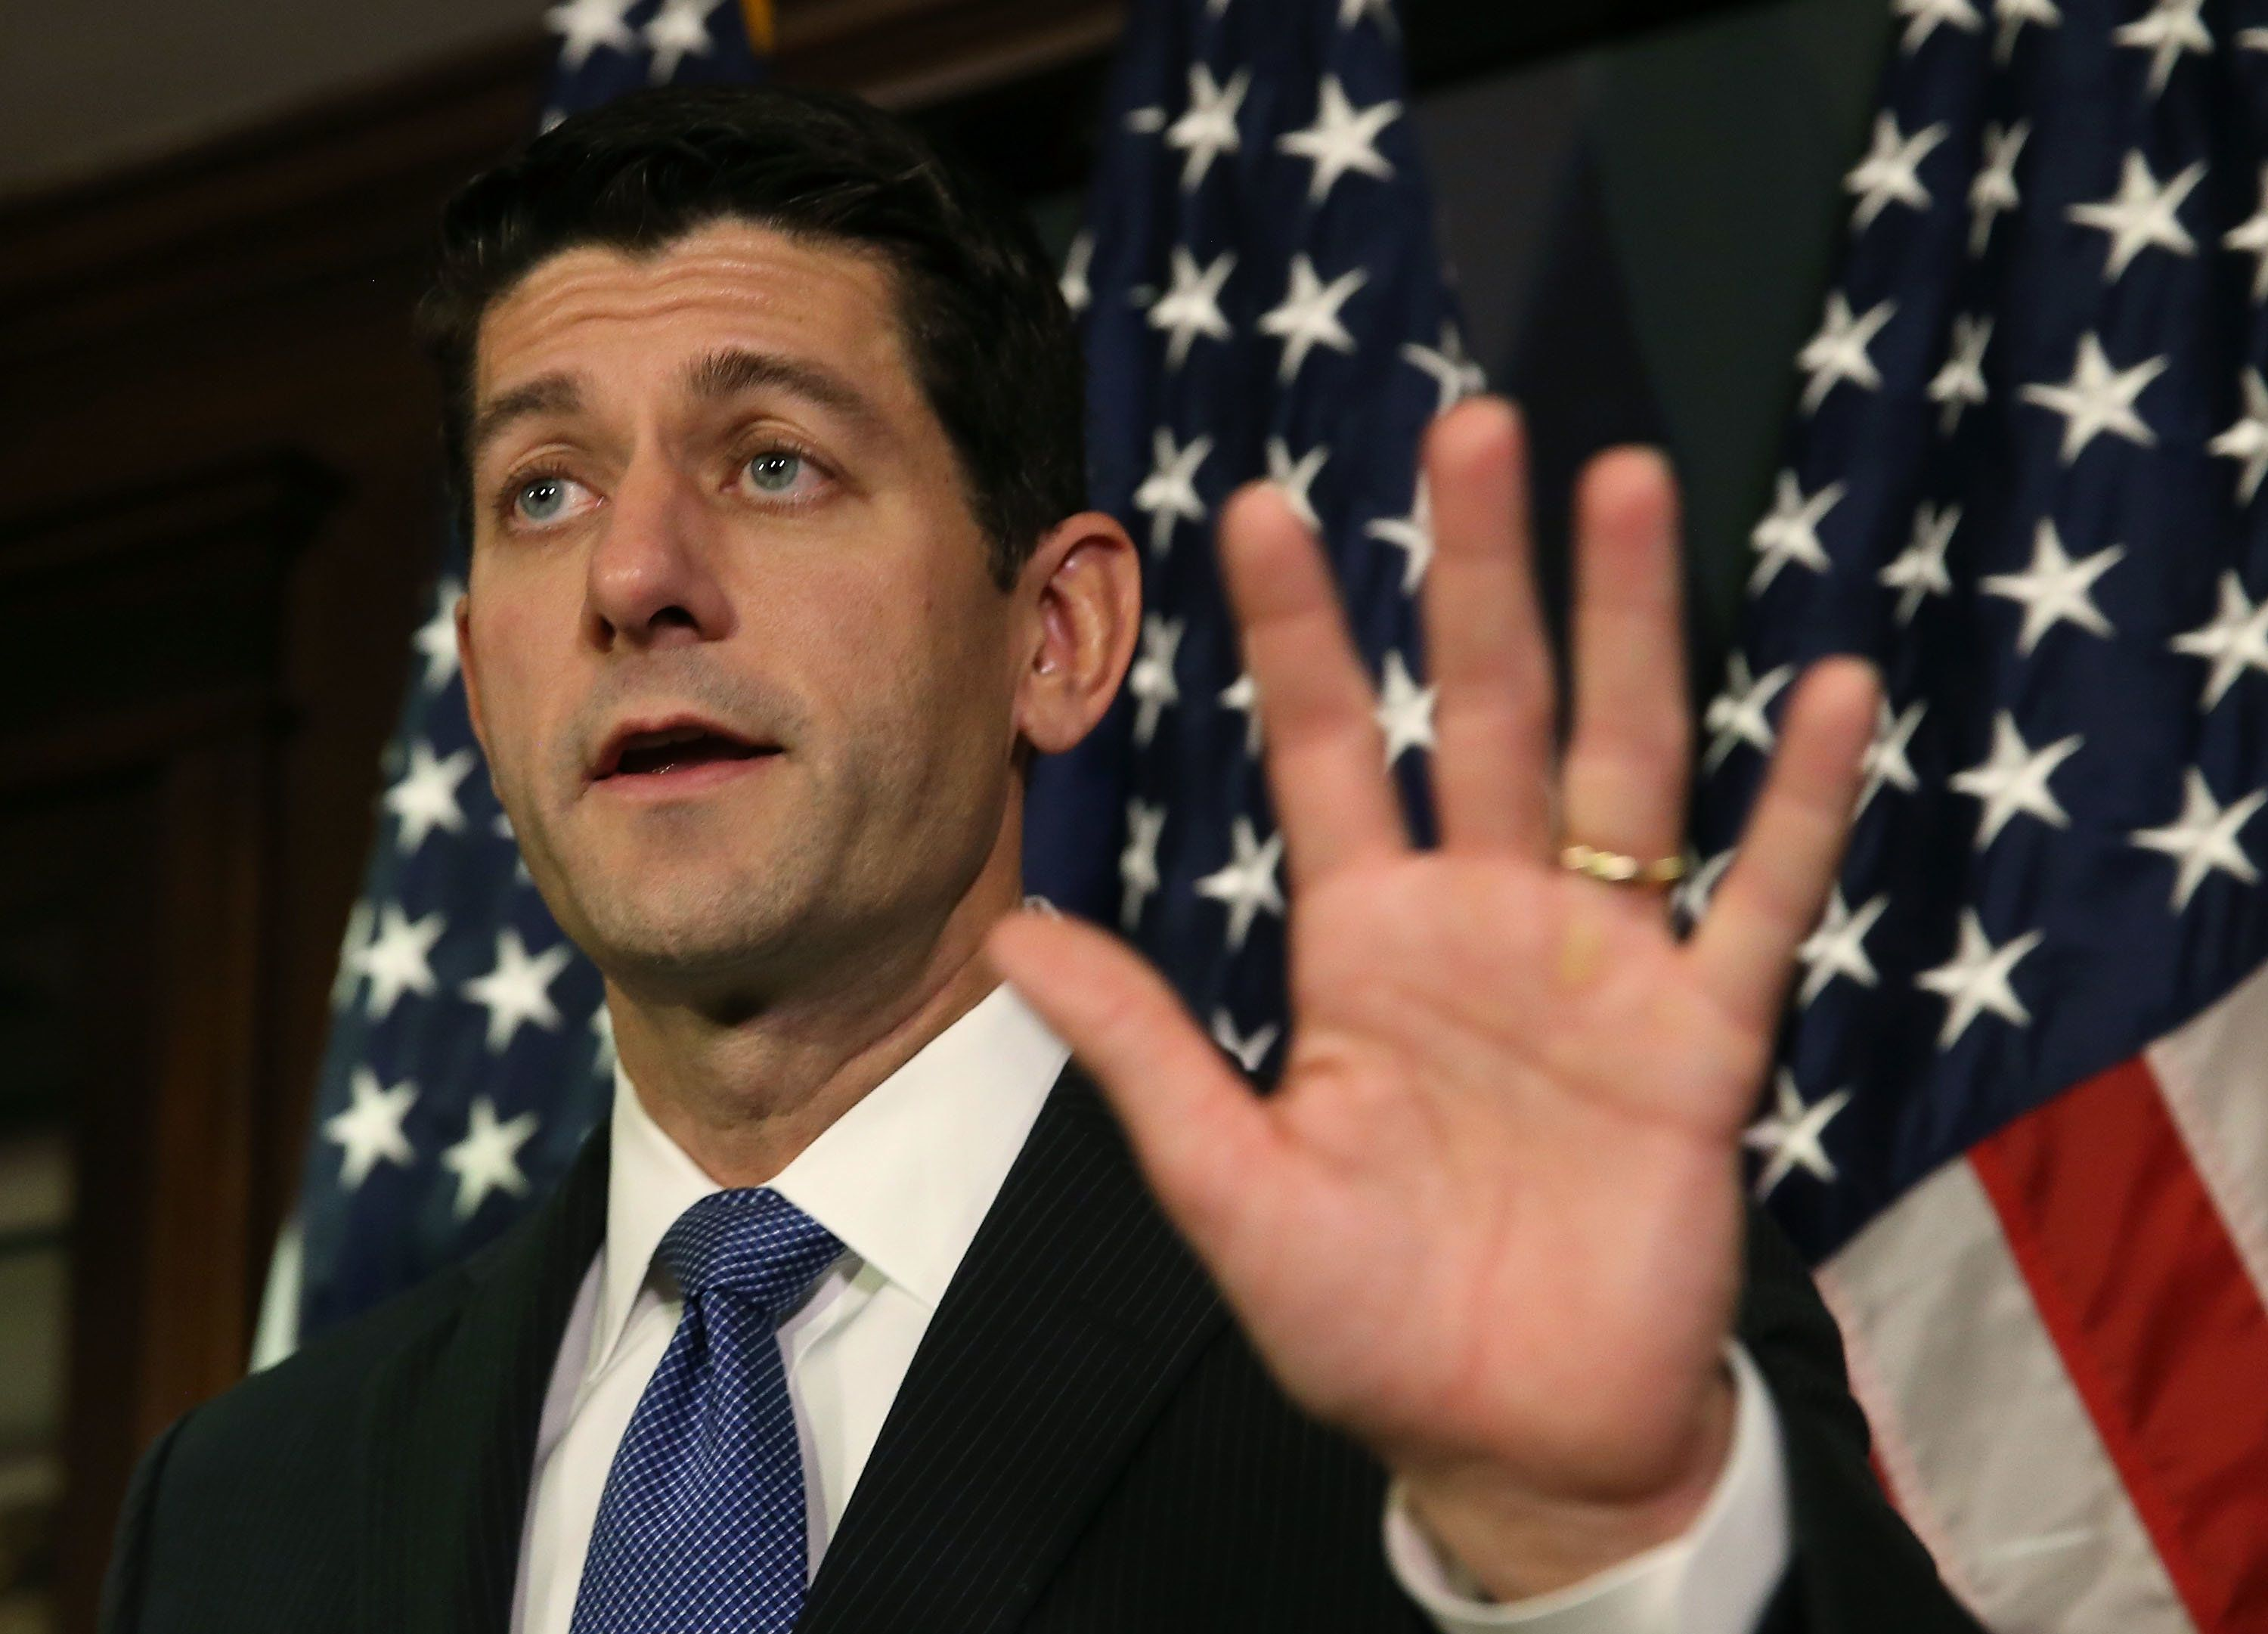 WASHINGTON, DC - NOVEMBER 03:  House Speaker Paul Ryan (R-WI) speaks to the media after a meeting with House Republicans on Capitol Hill November 3, 2015 in Washington, DC. Ryan joined with members of the House leadership to discuss legislation that is currently before Congress.  (Photo by Mark Wilson/Getty Images)